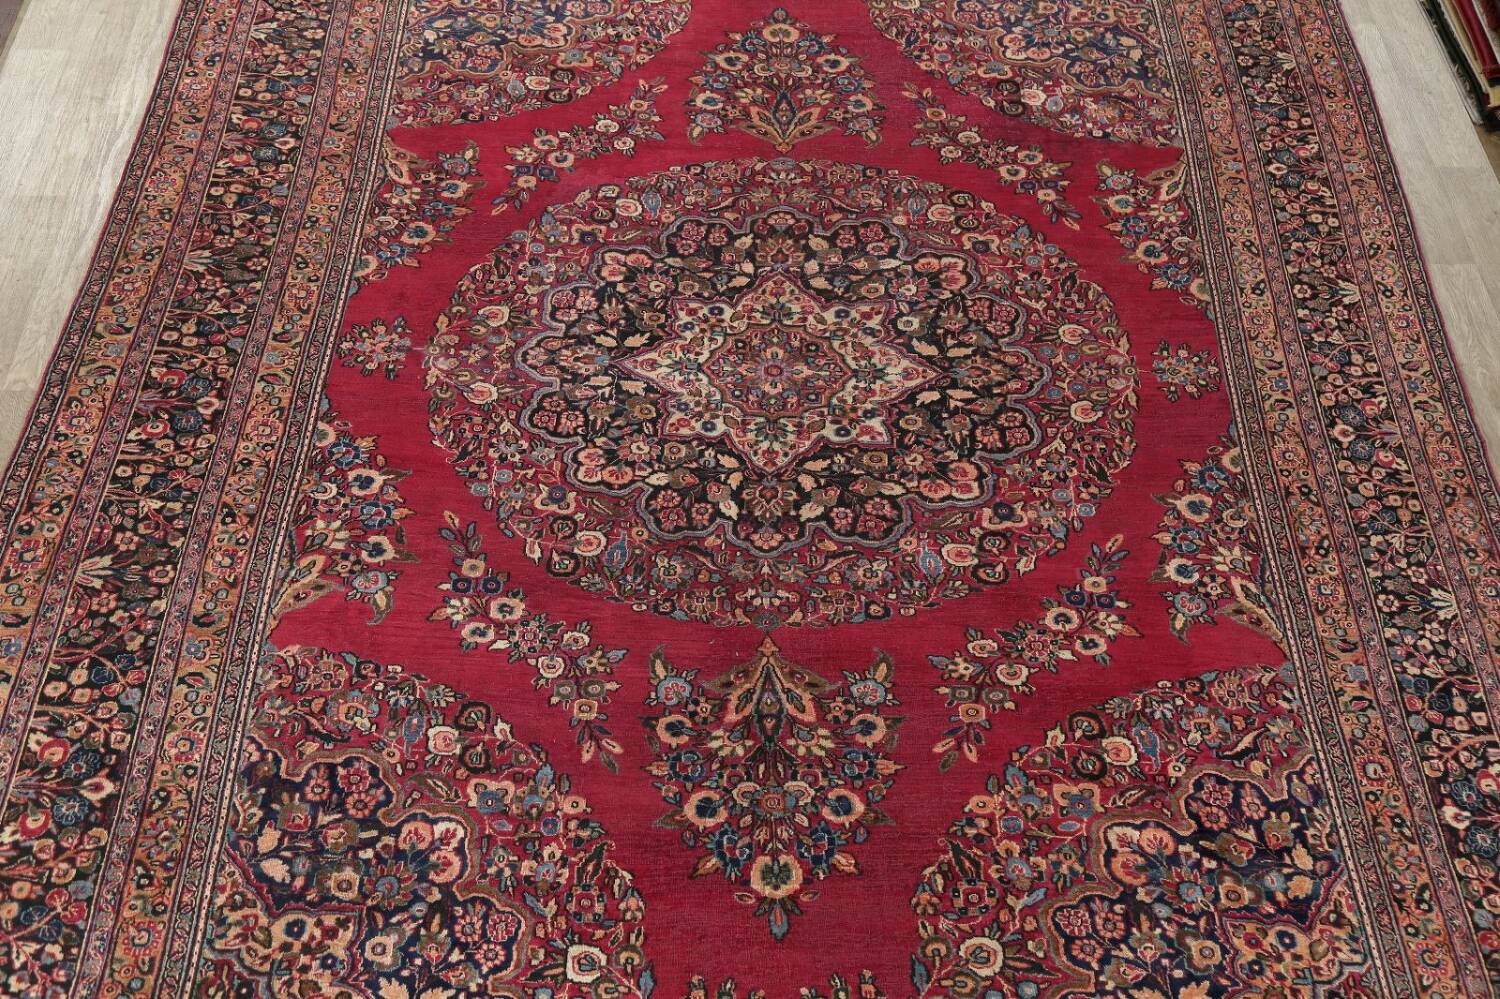 Antique Floral Red Dorokhsh Persian Rug Large 11x14 image 3